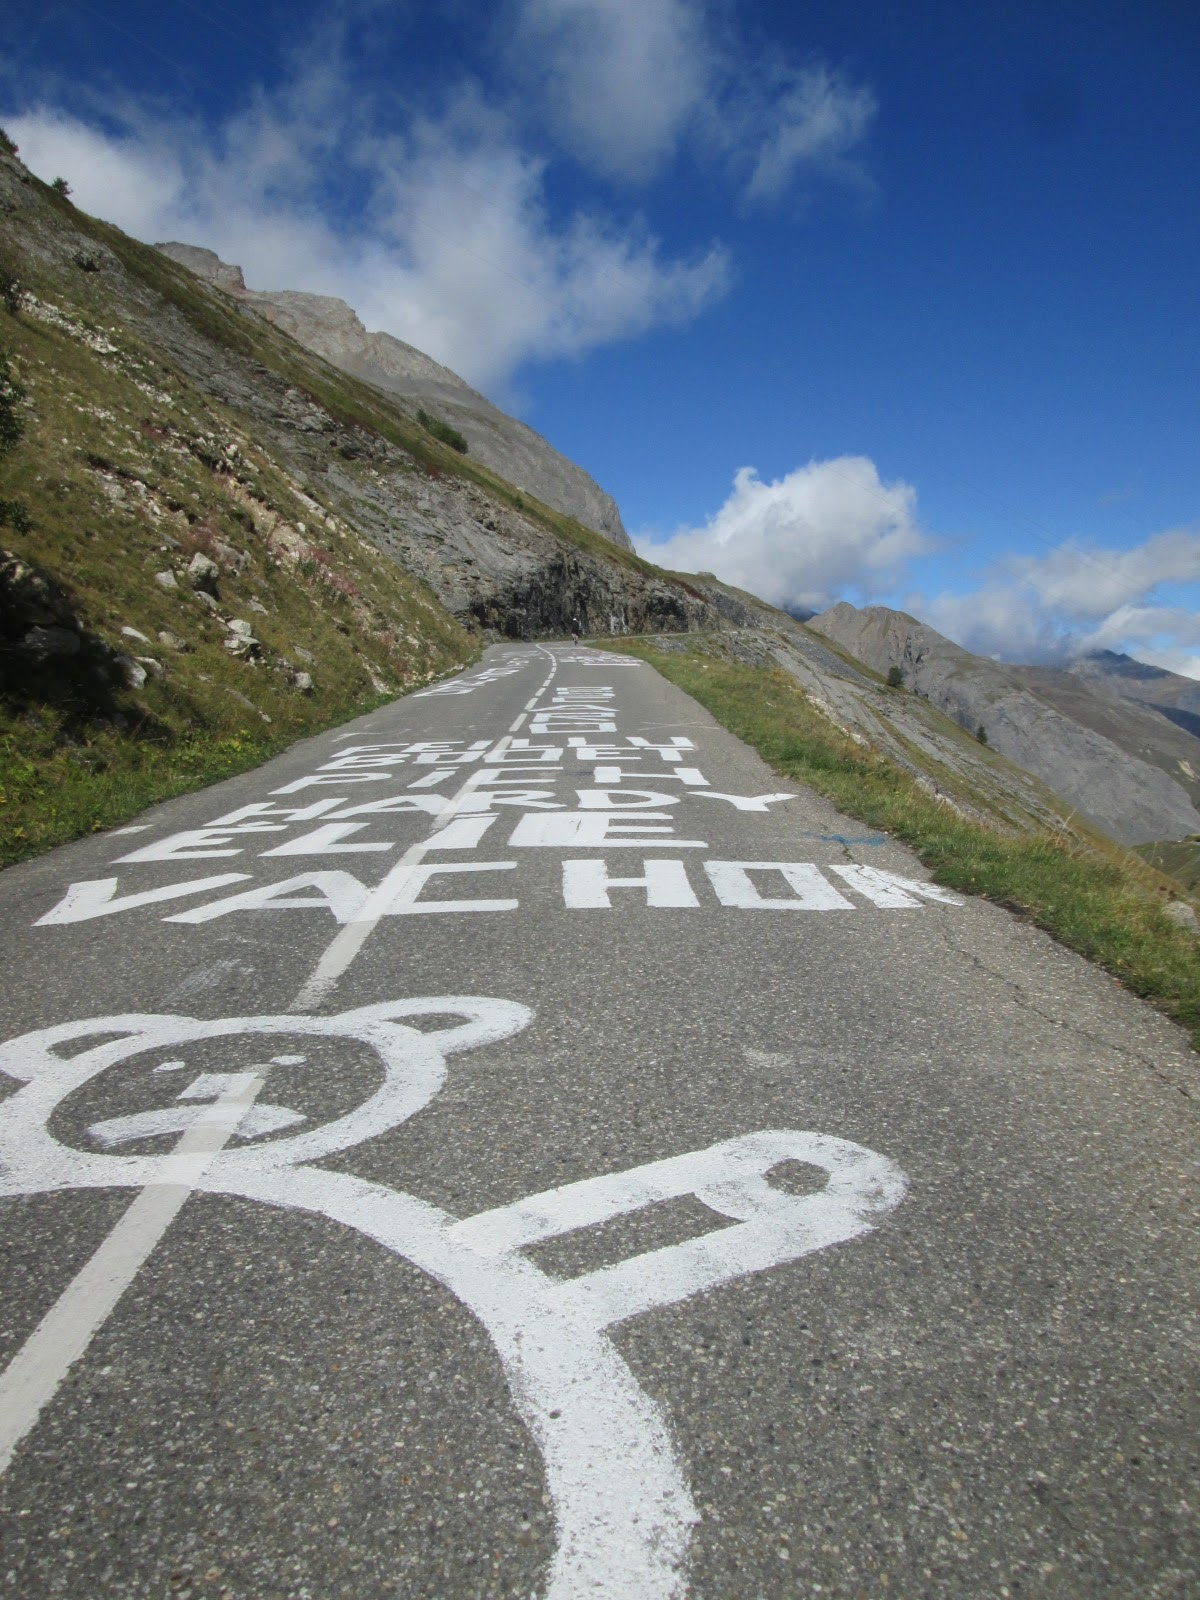 Col Du Galibier Tour De France : galibier, france, Cycling, Galibier, (2642m), Maurienne, Telegraphe, (1566m), Esther, Adventuring, Together, Life,, Love,, Health, Travel